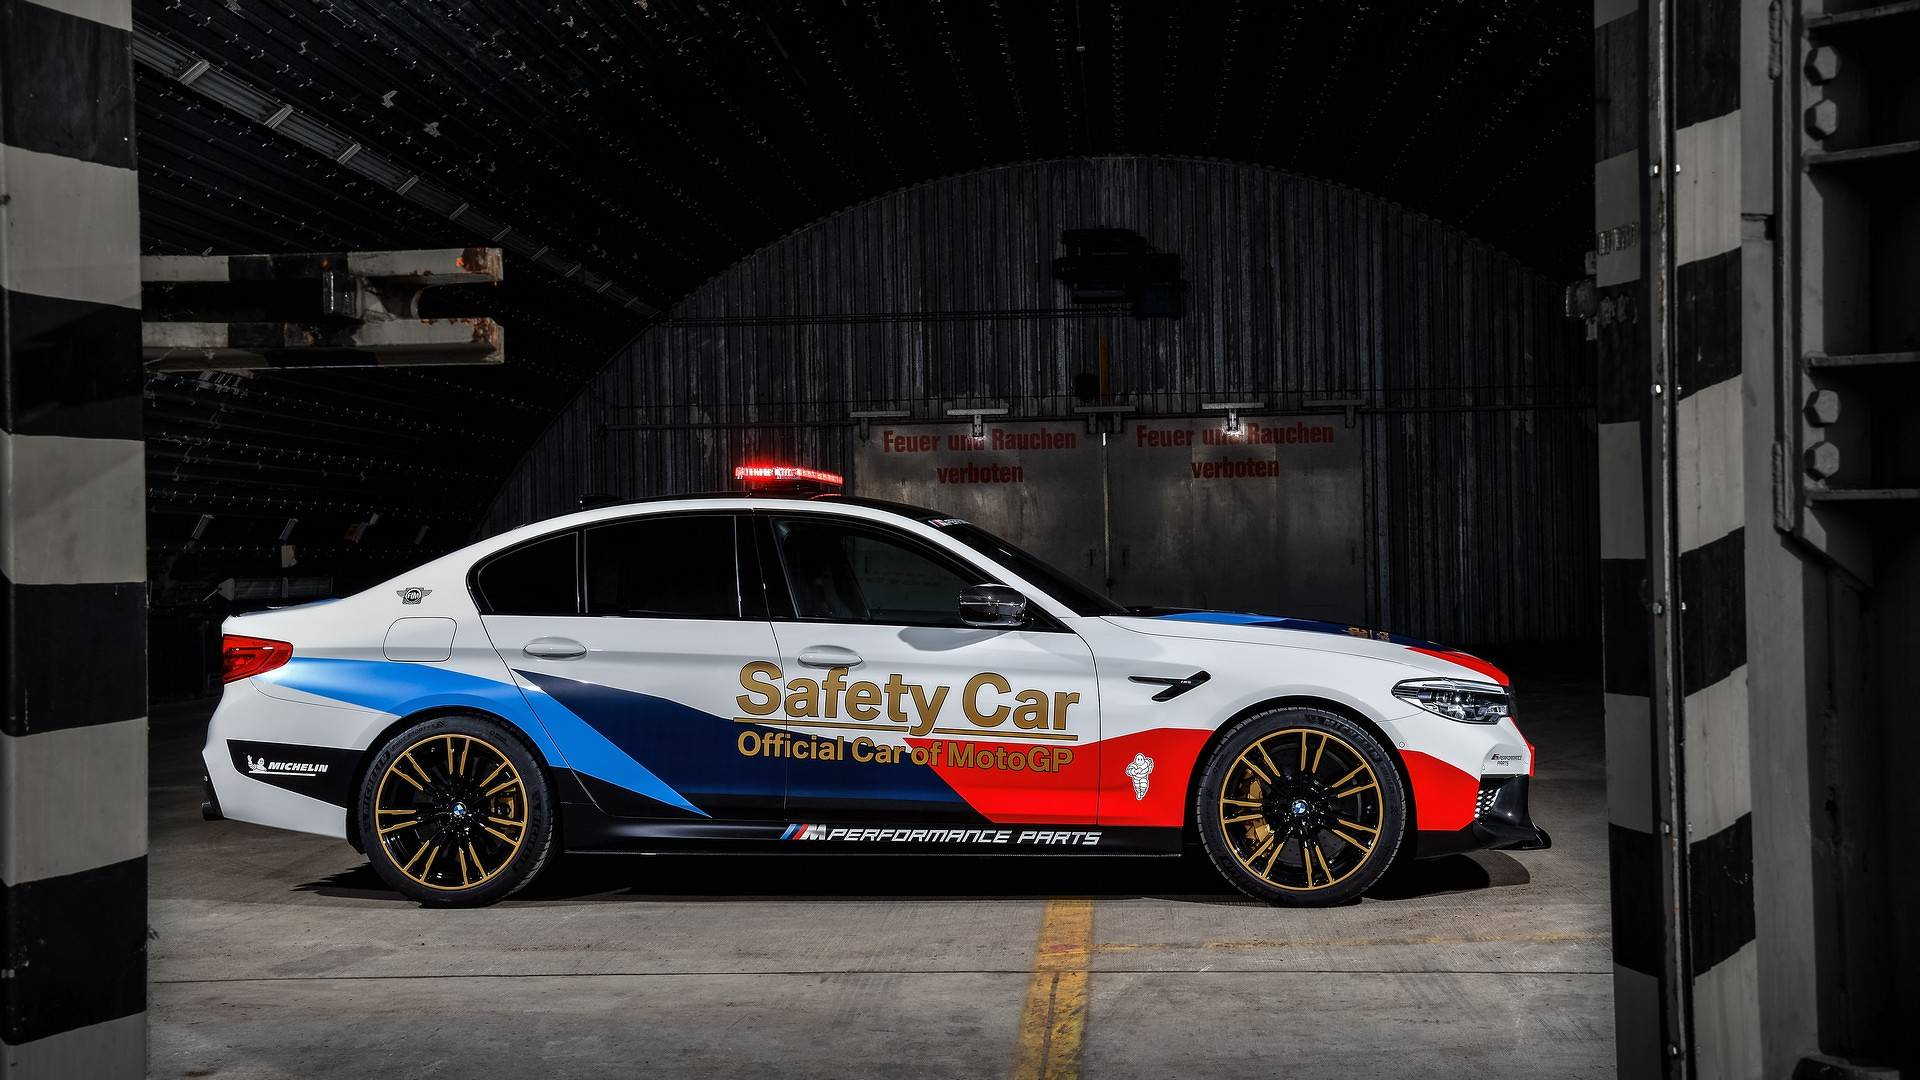 bmw-m5-motogp-safety-car (16)